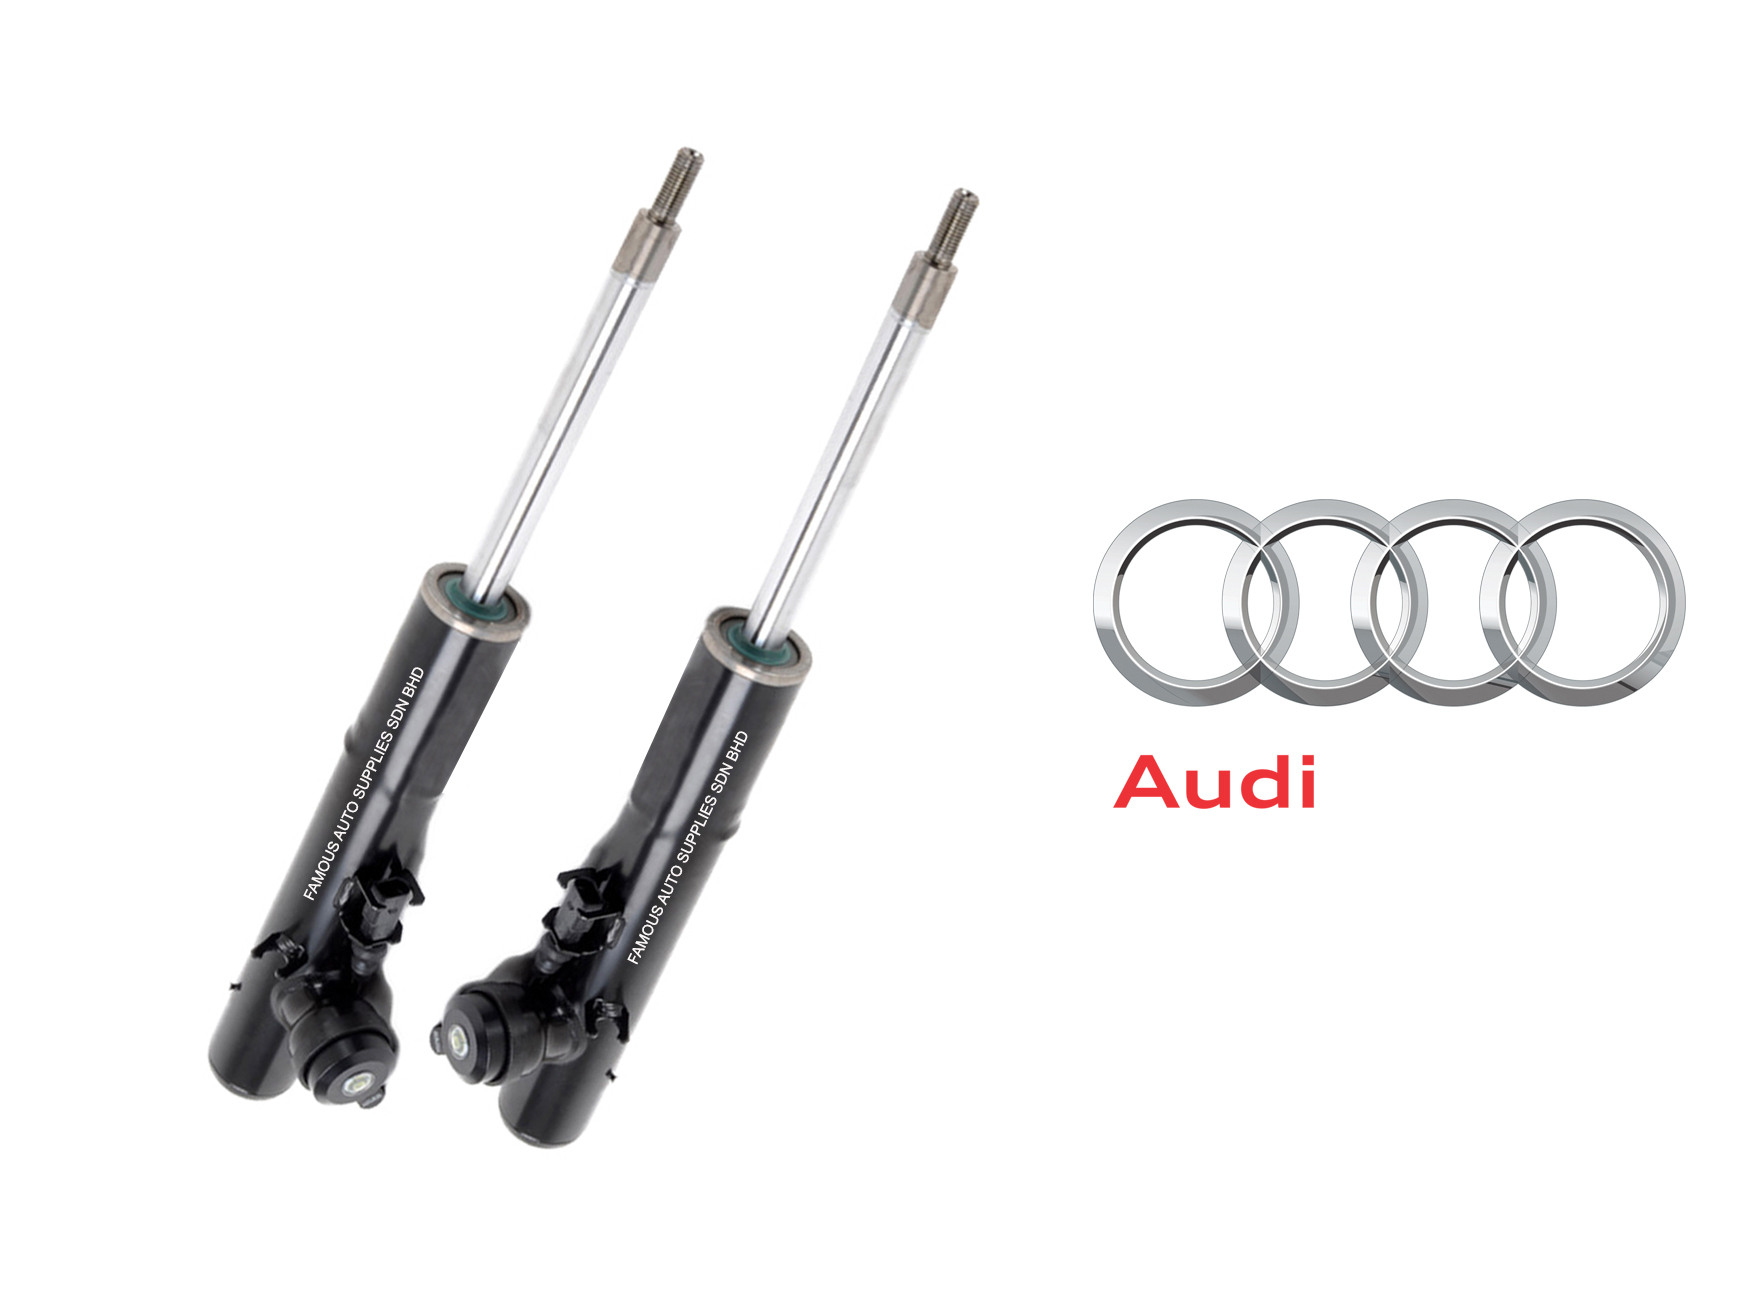 Genuine Front Electric Ads Shock Absorber Audi A4 B8 A5